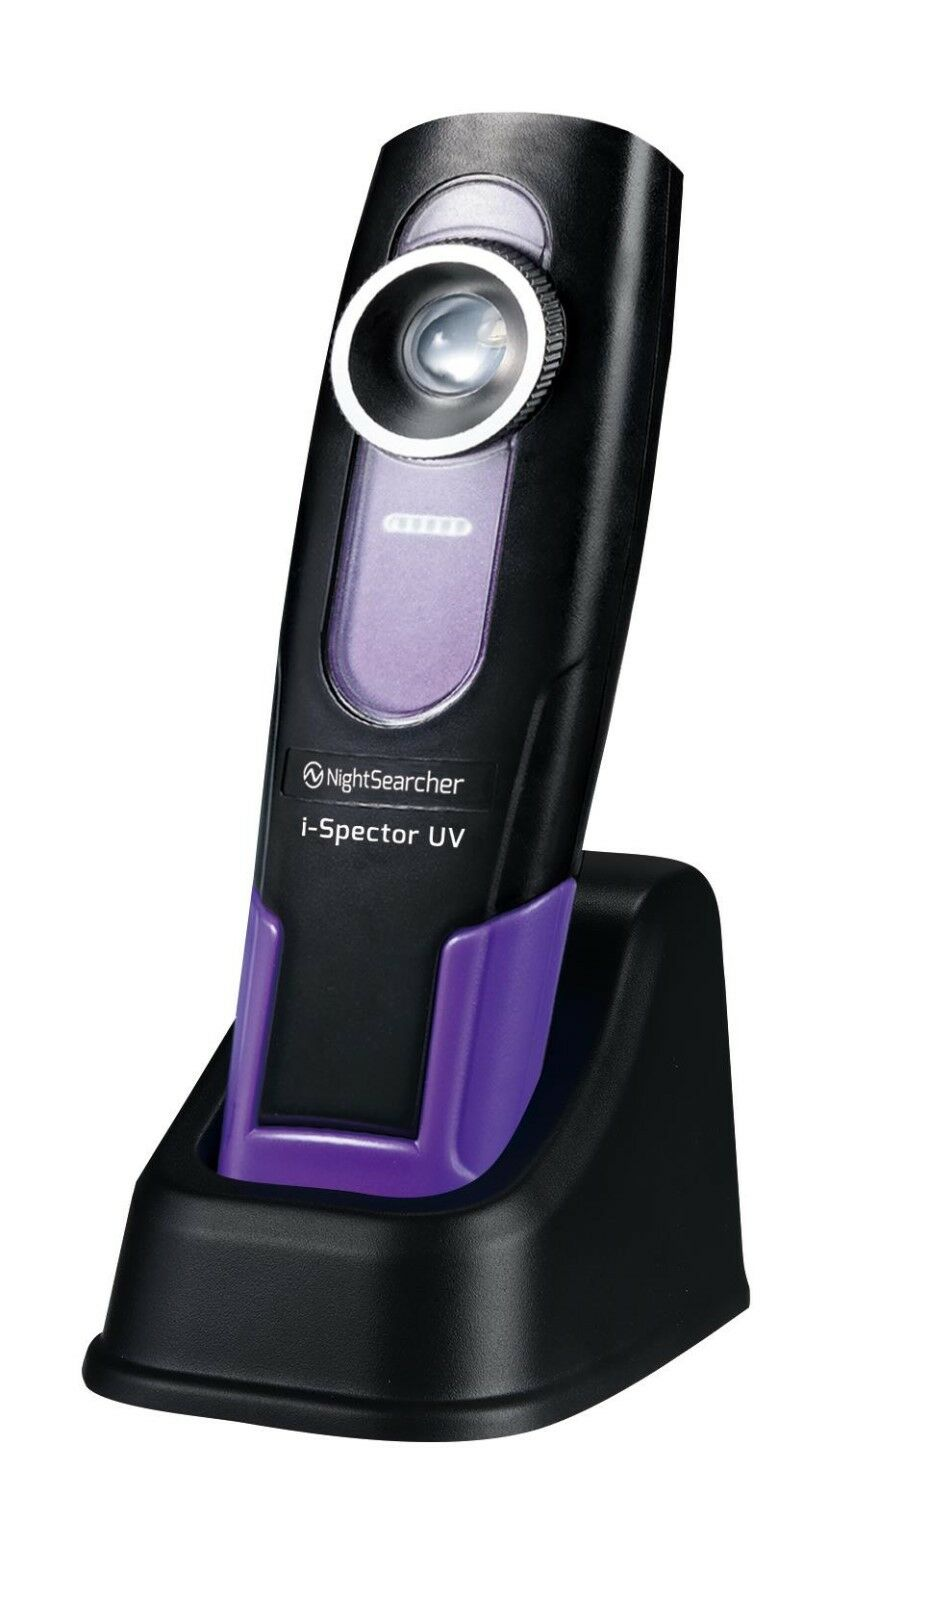 NightSearcher i-Spector UV - Rechargeable Ultra purple 395nm Inspection Light